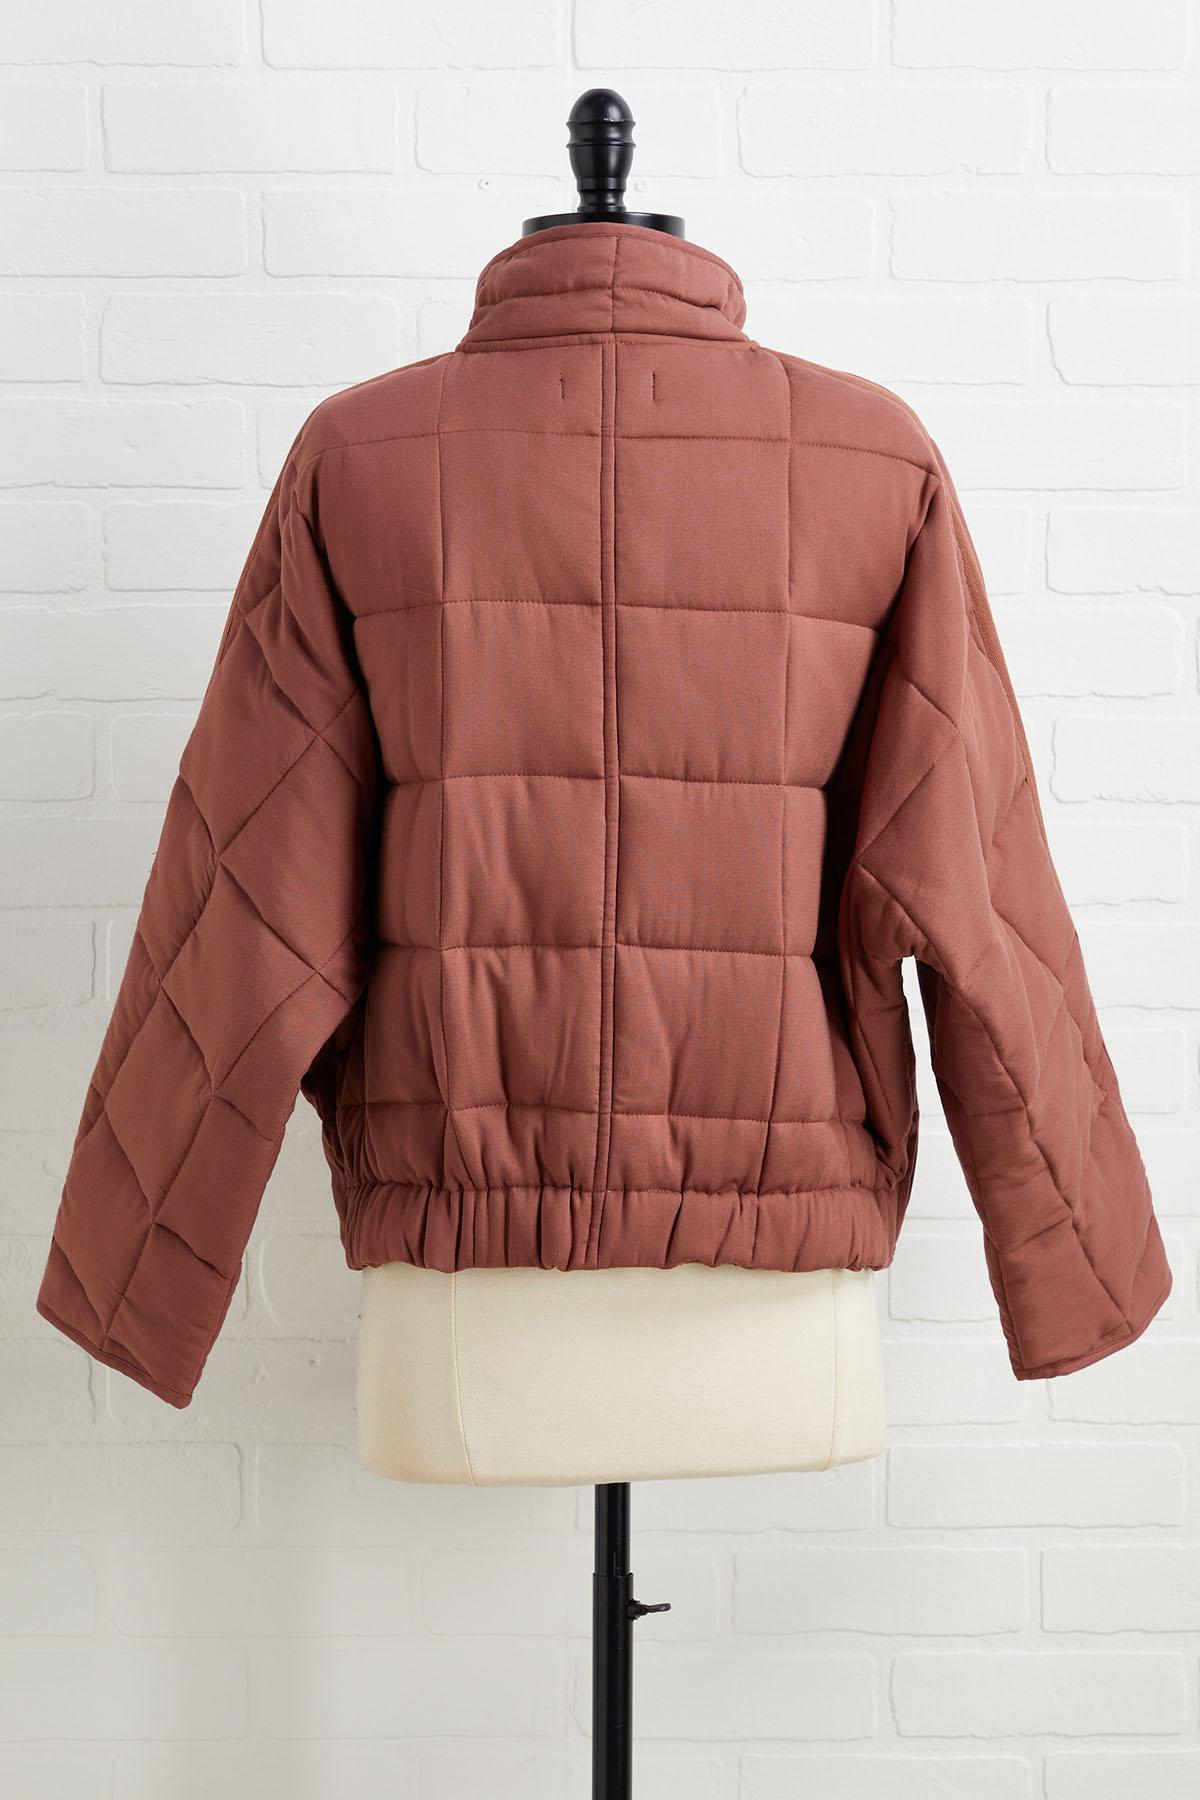 By The Bonfire Jacket